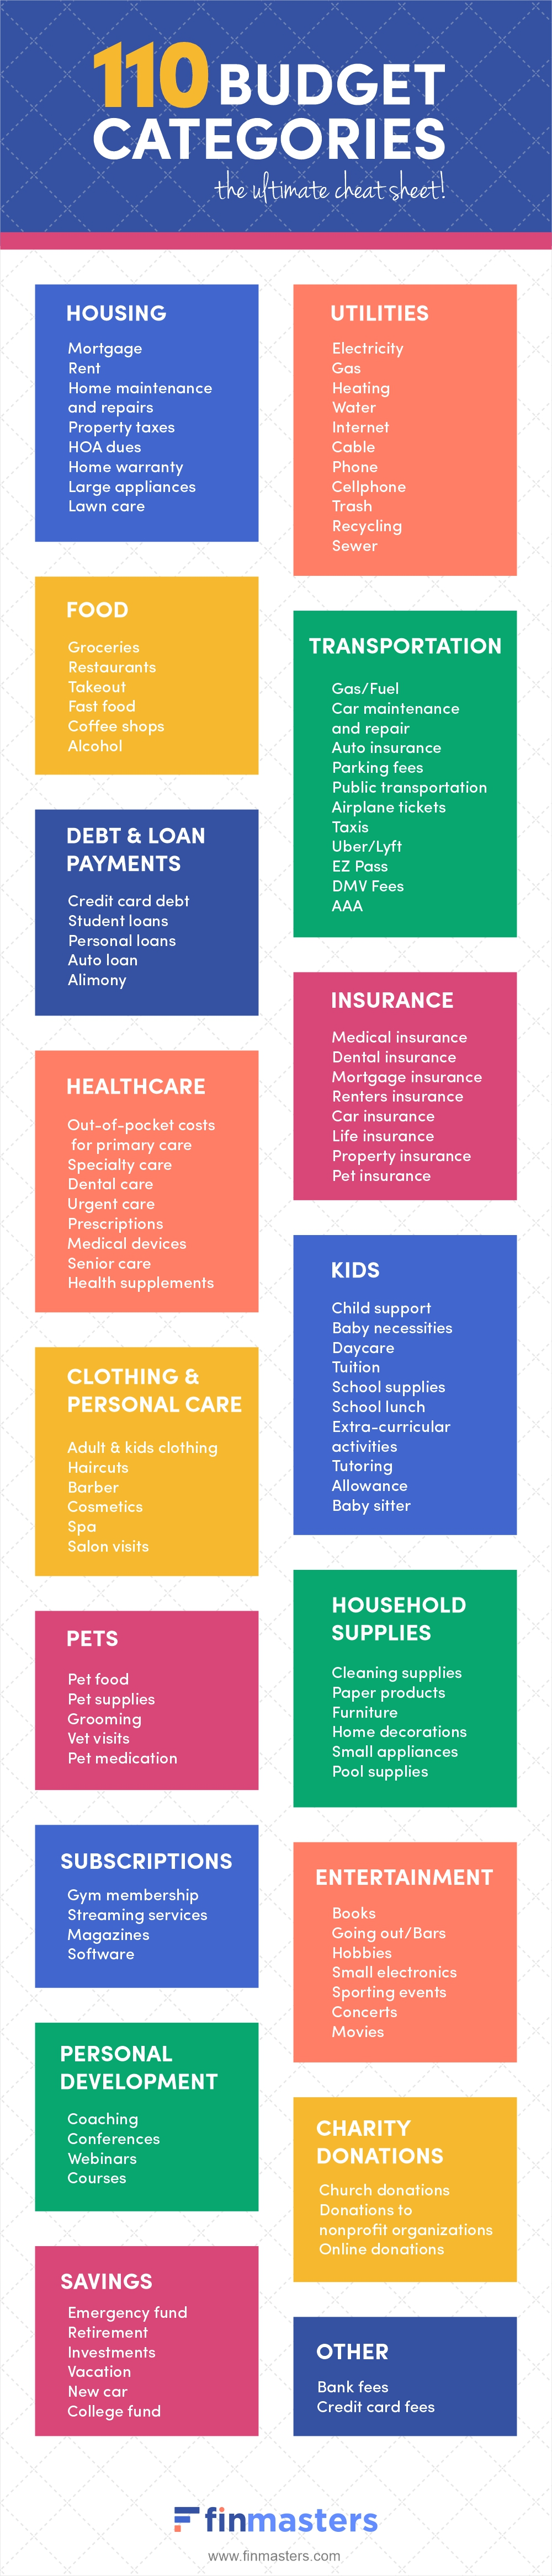 110 Budget Categories: The Ultimate Cheat Sheet